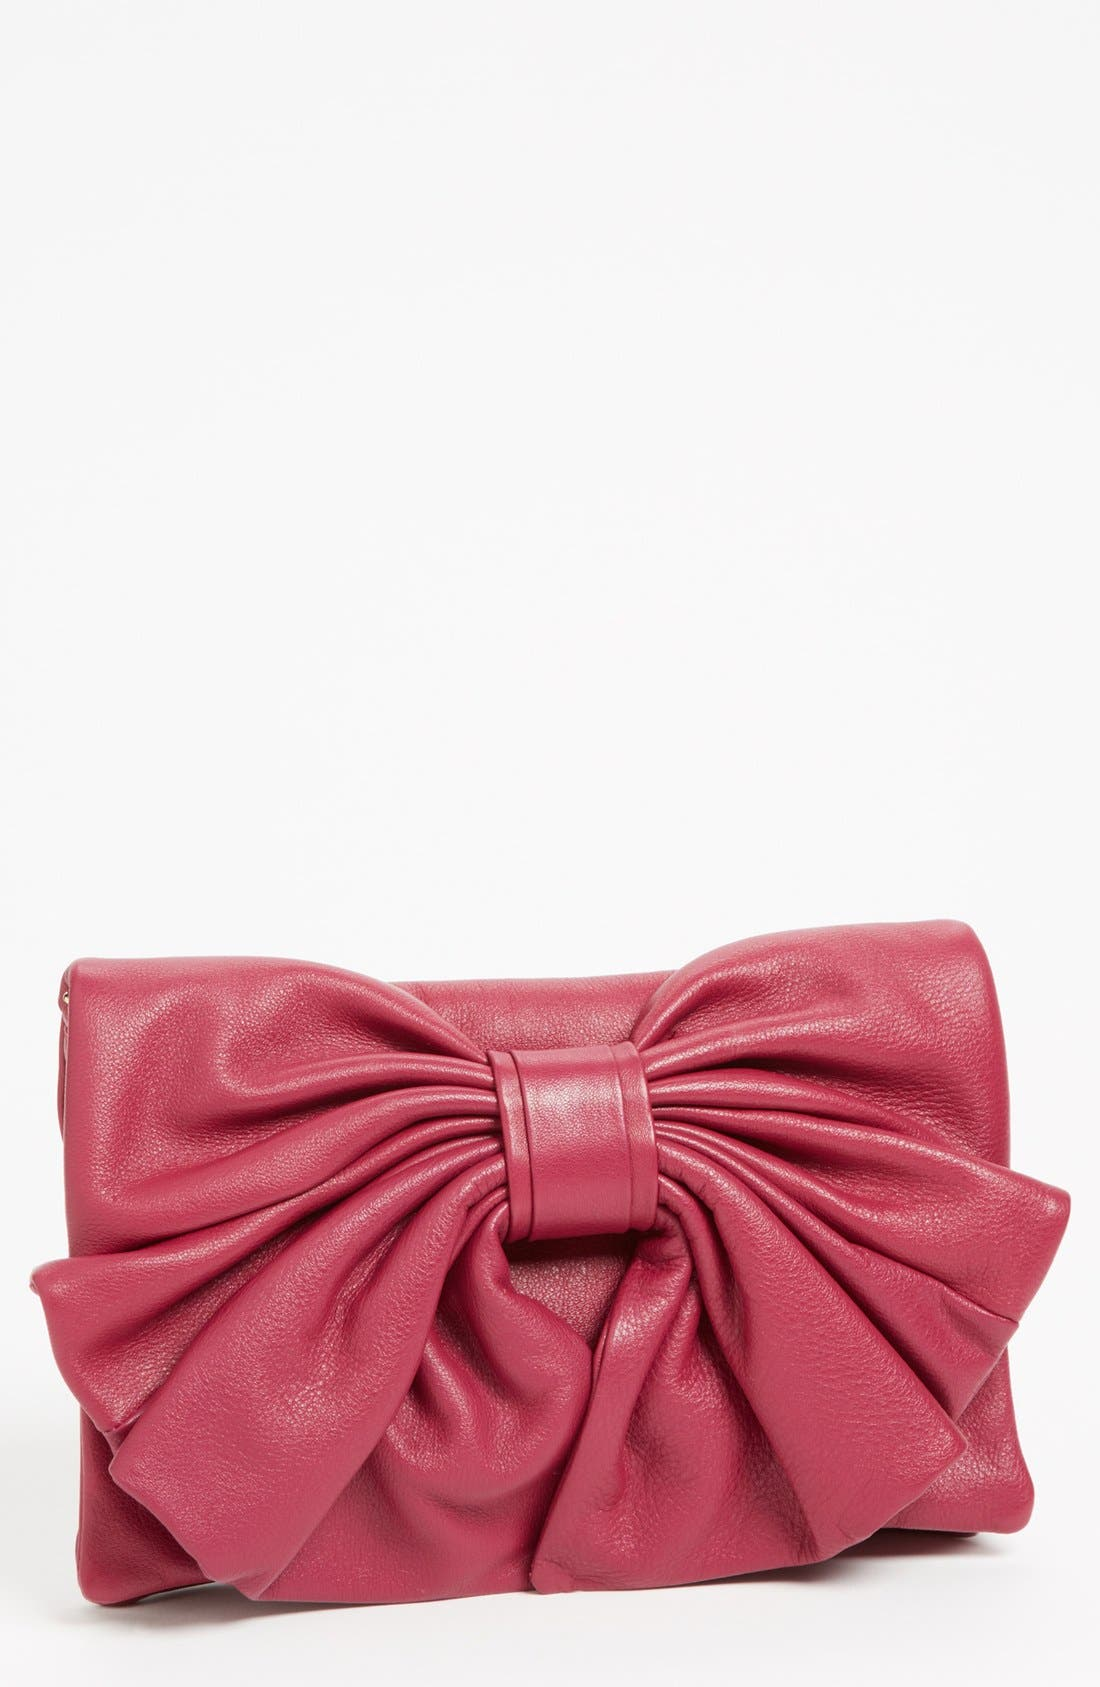 Alternate Image 1 Selected - RED Valentino 'Bow' Leather Clutch